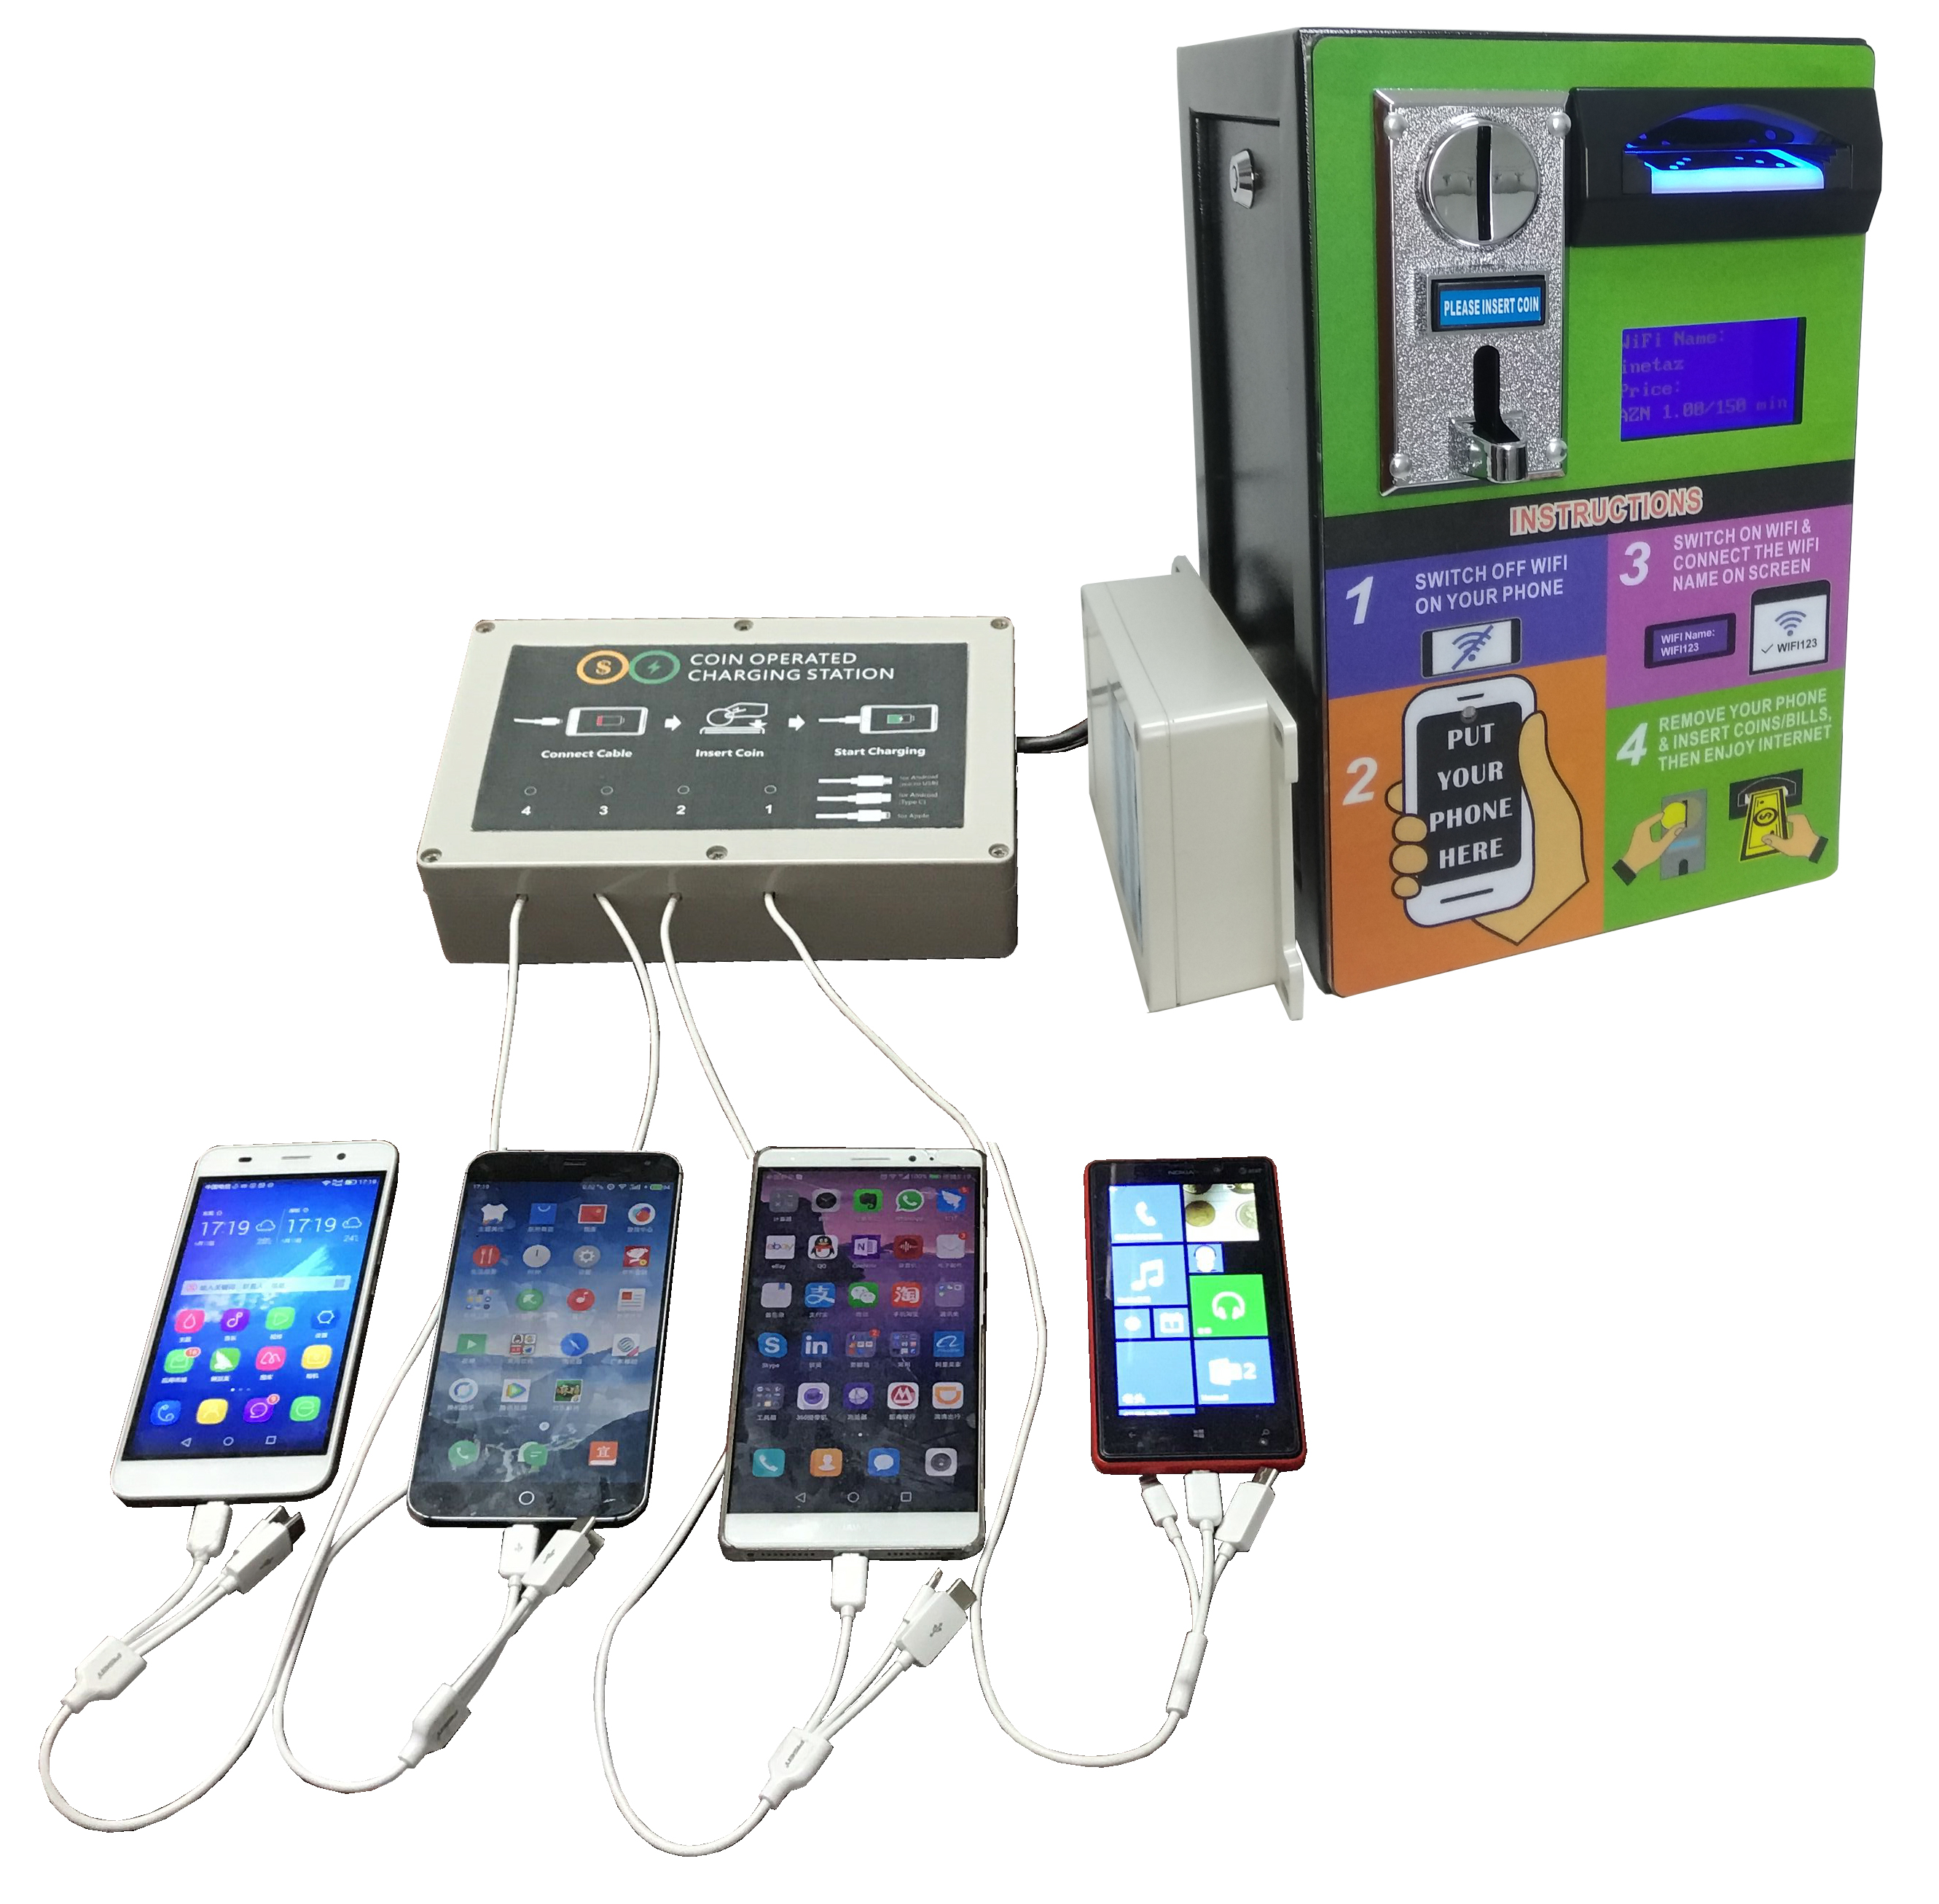 2019 Innovative Product Ideas Wall Mounted 4G Coin Banknote Operated Payment Vending Machine